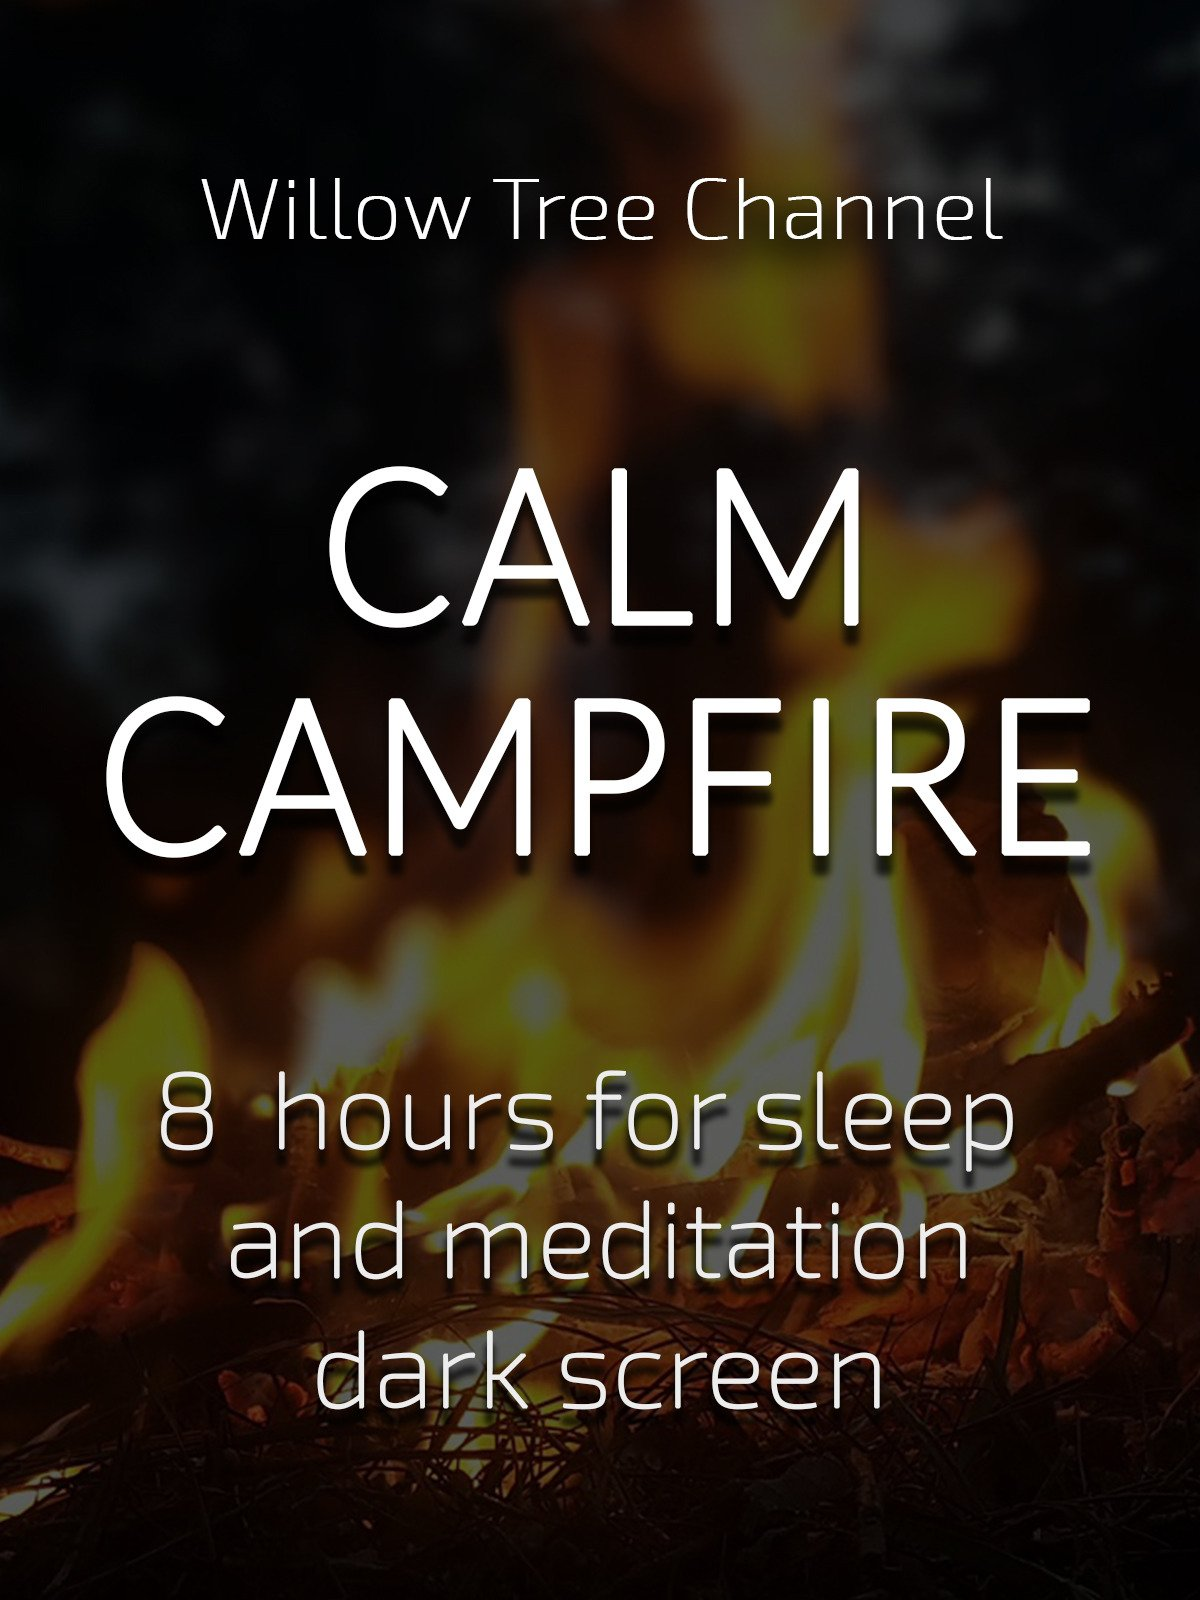 Calm campfire, 8 hours for Sleep and Meditation, dark screen